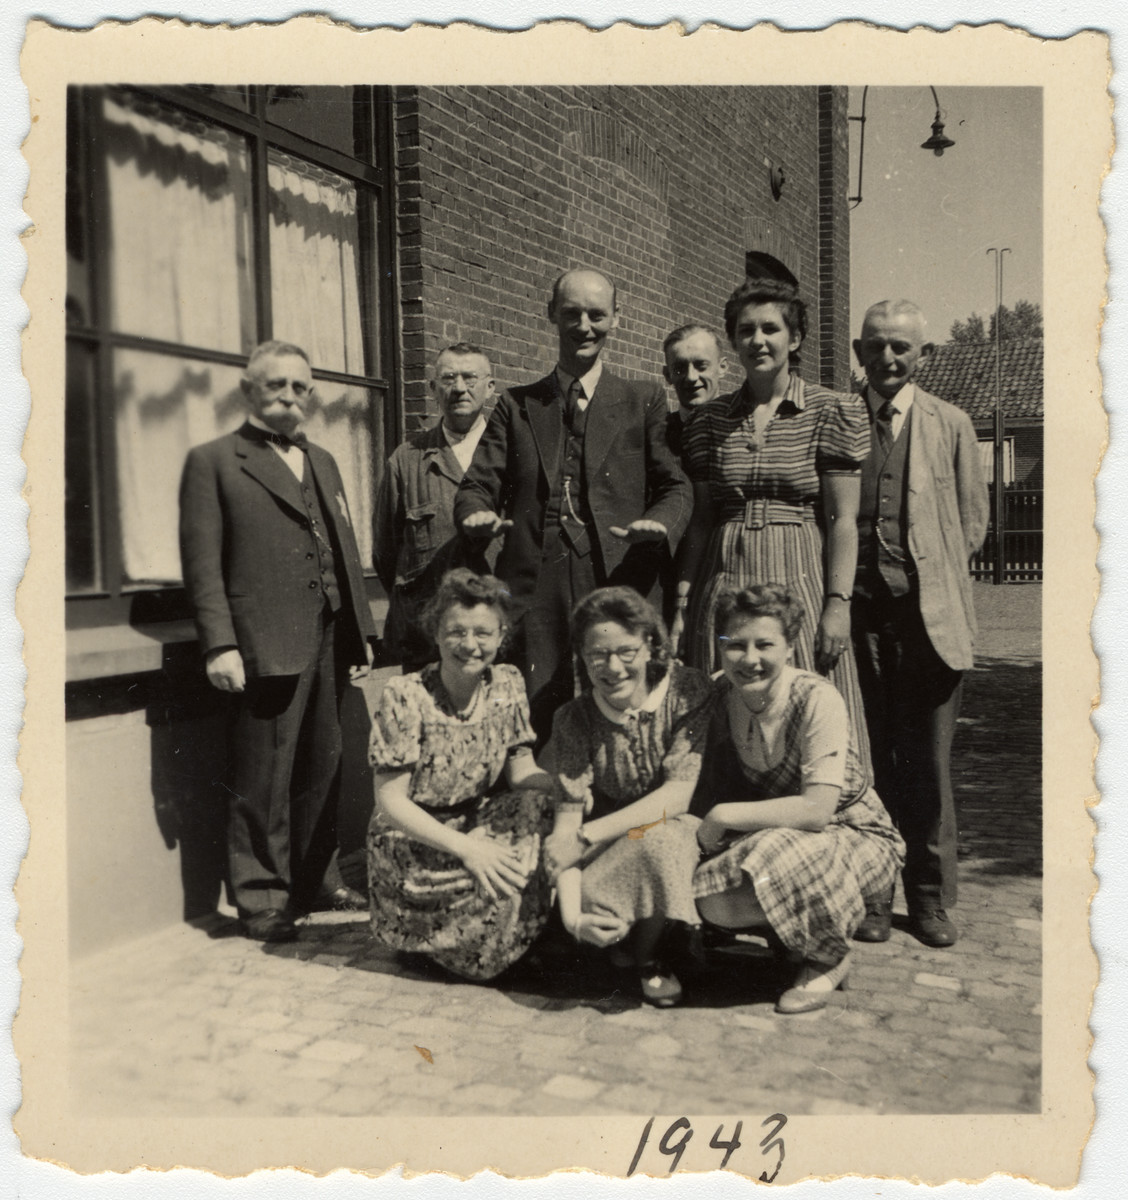 "A Jewish businessman poses with the workers in his textile factory ""M. van Dam and Zonen"" on his last day before he was forced to hand over his business.  Isidoor zan Dam is pictured on the far left wearing a yellow star."